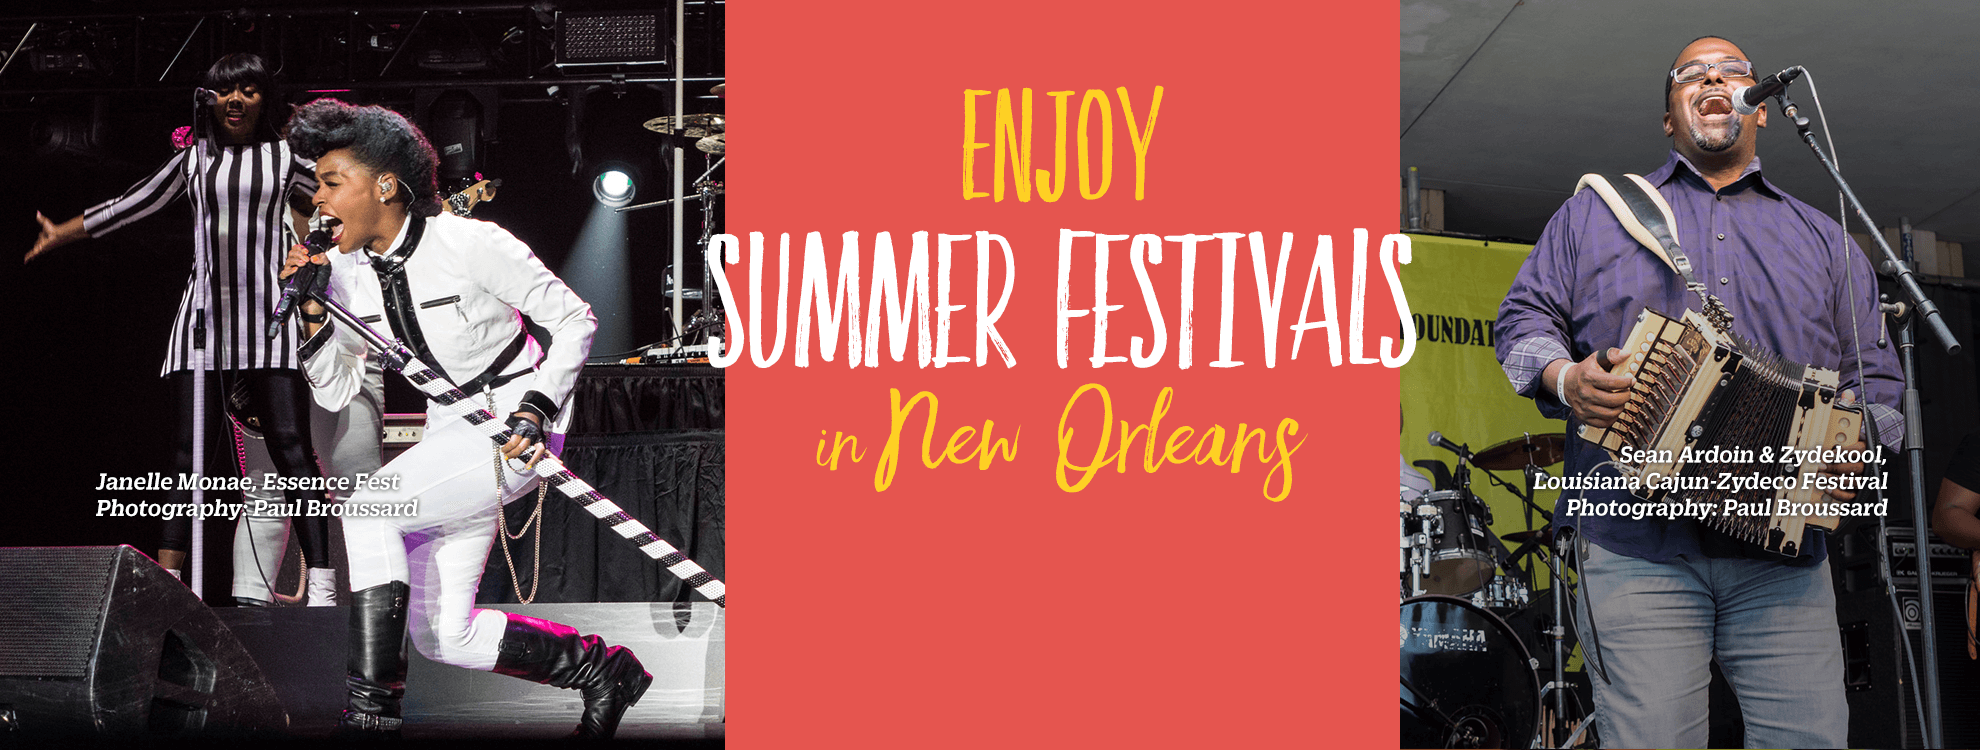 New Orleans summer festivals